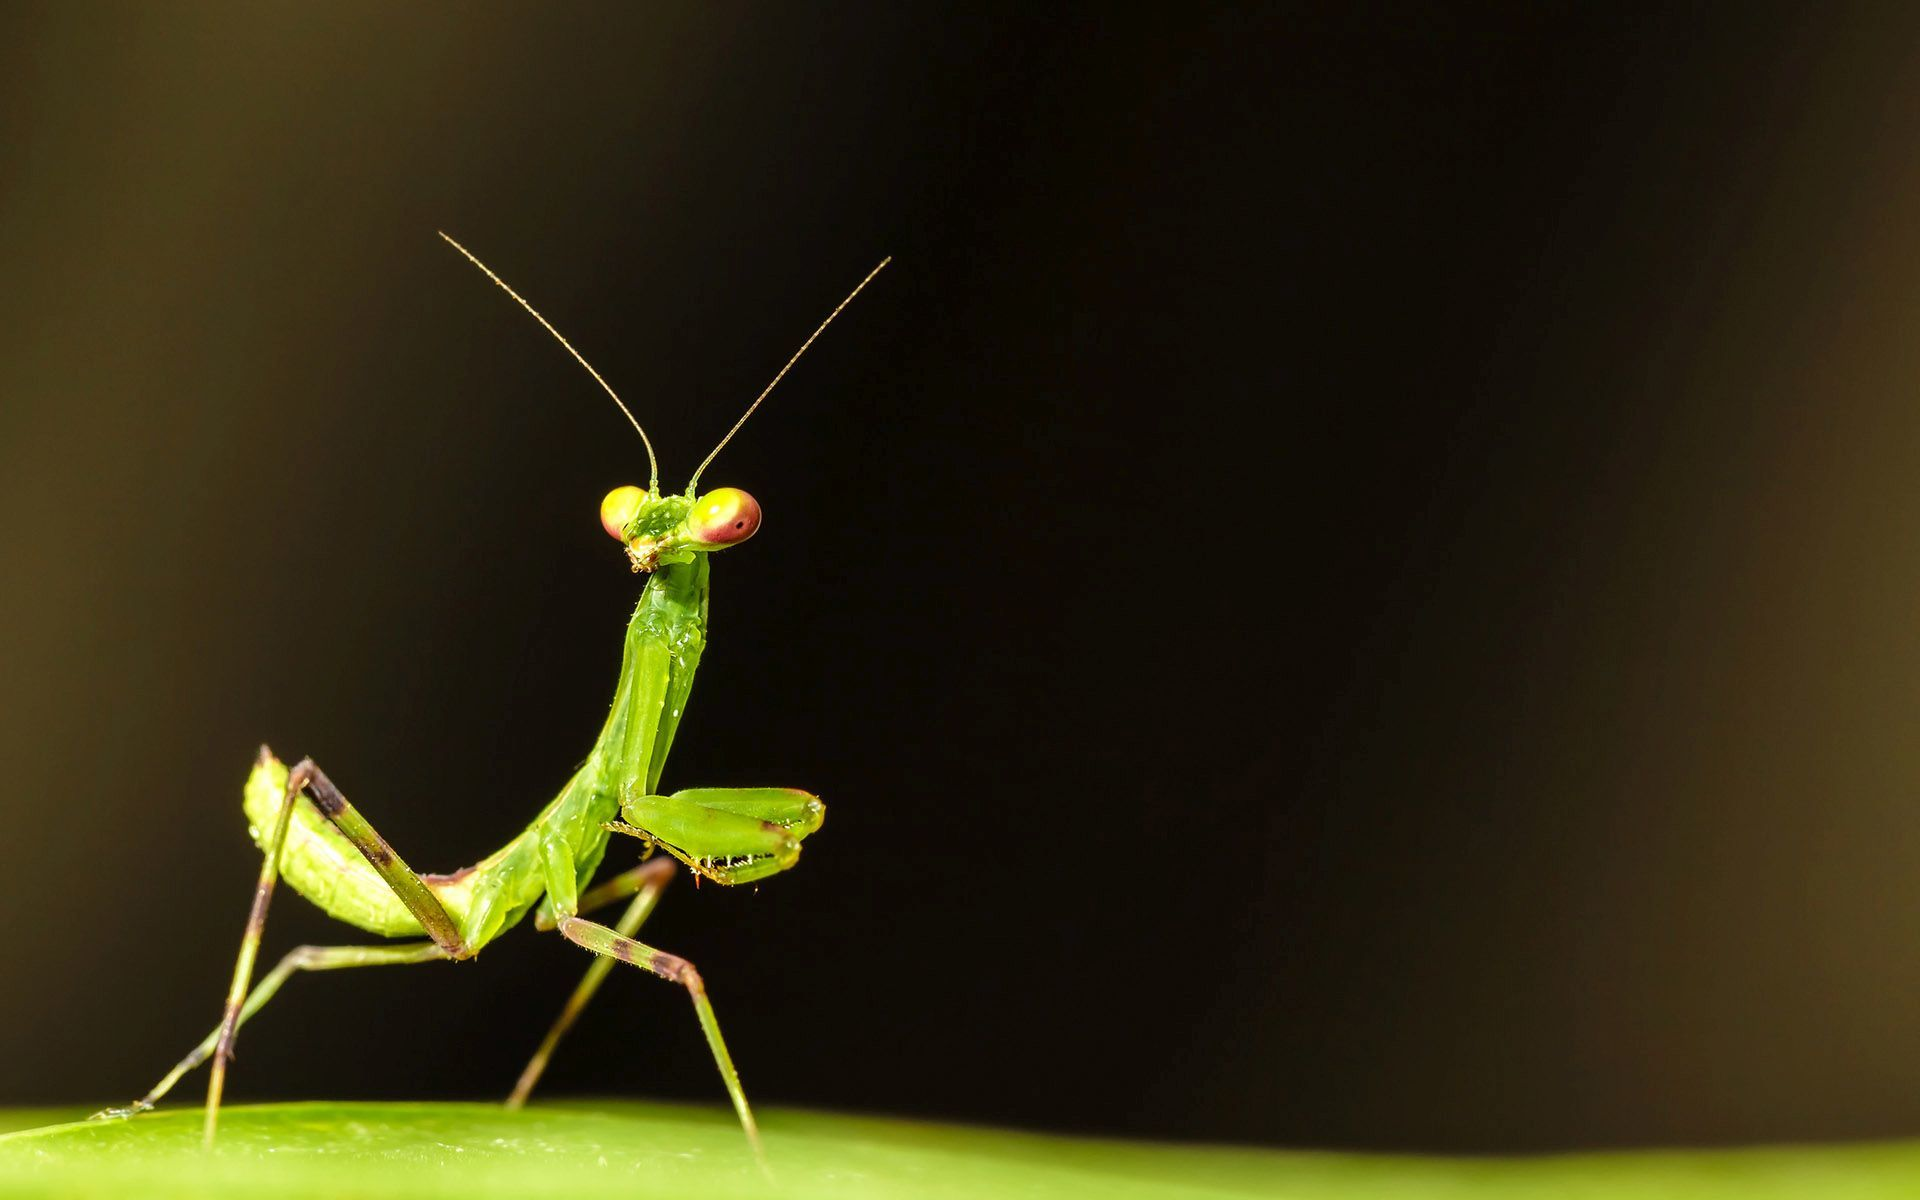 Broken Heart Quotes Wallpapers For Mobile Download Praying Mantis Wallpaper Gallery